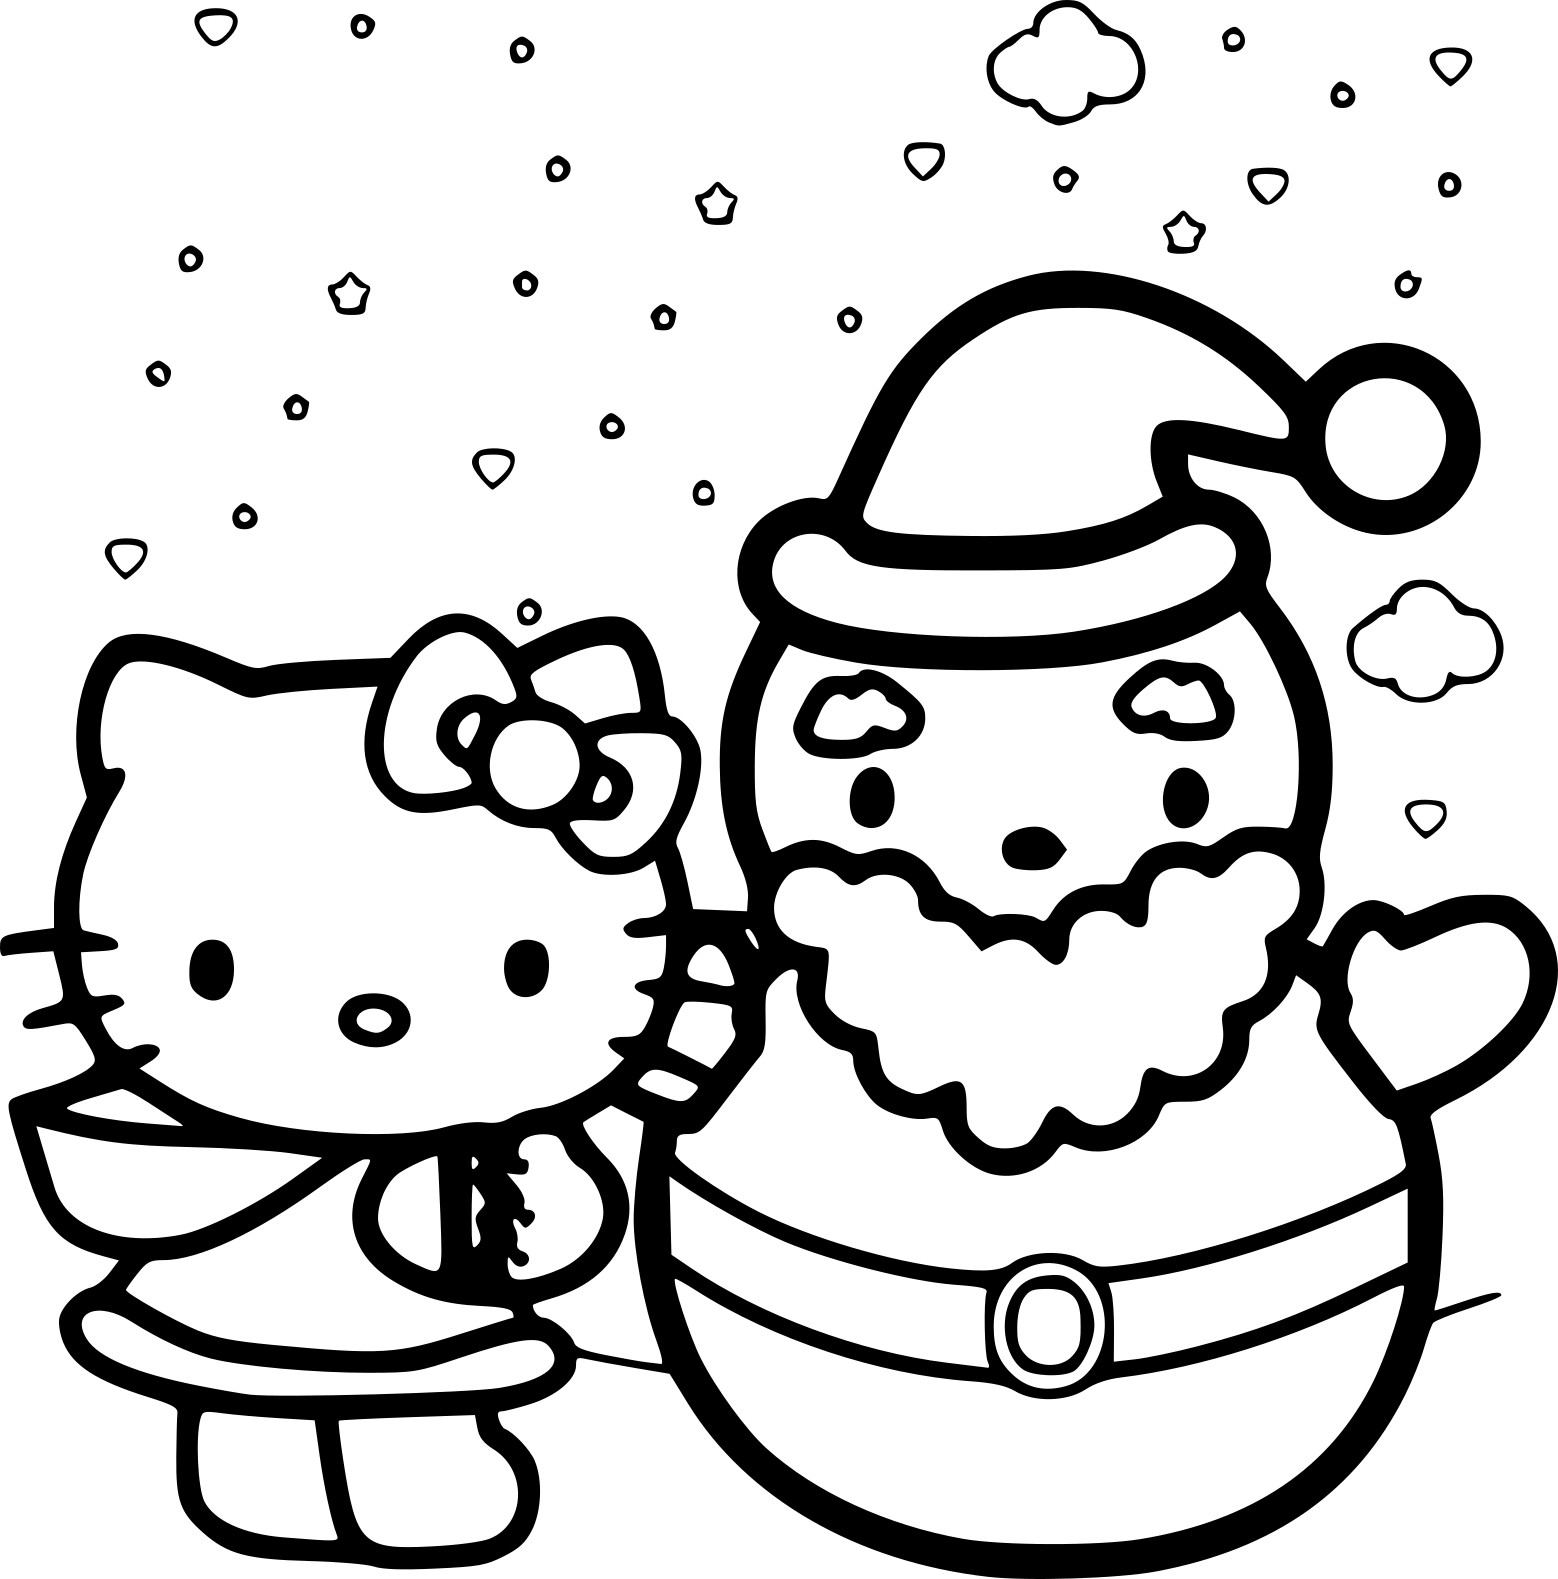 Coloriage de hello kitty princesse - Coloriage hello kitty jeux ...